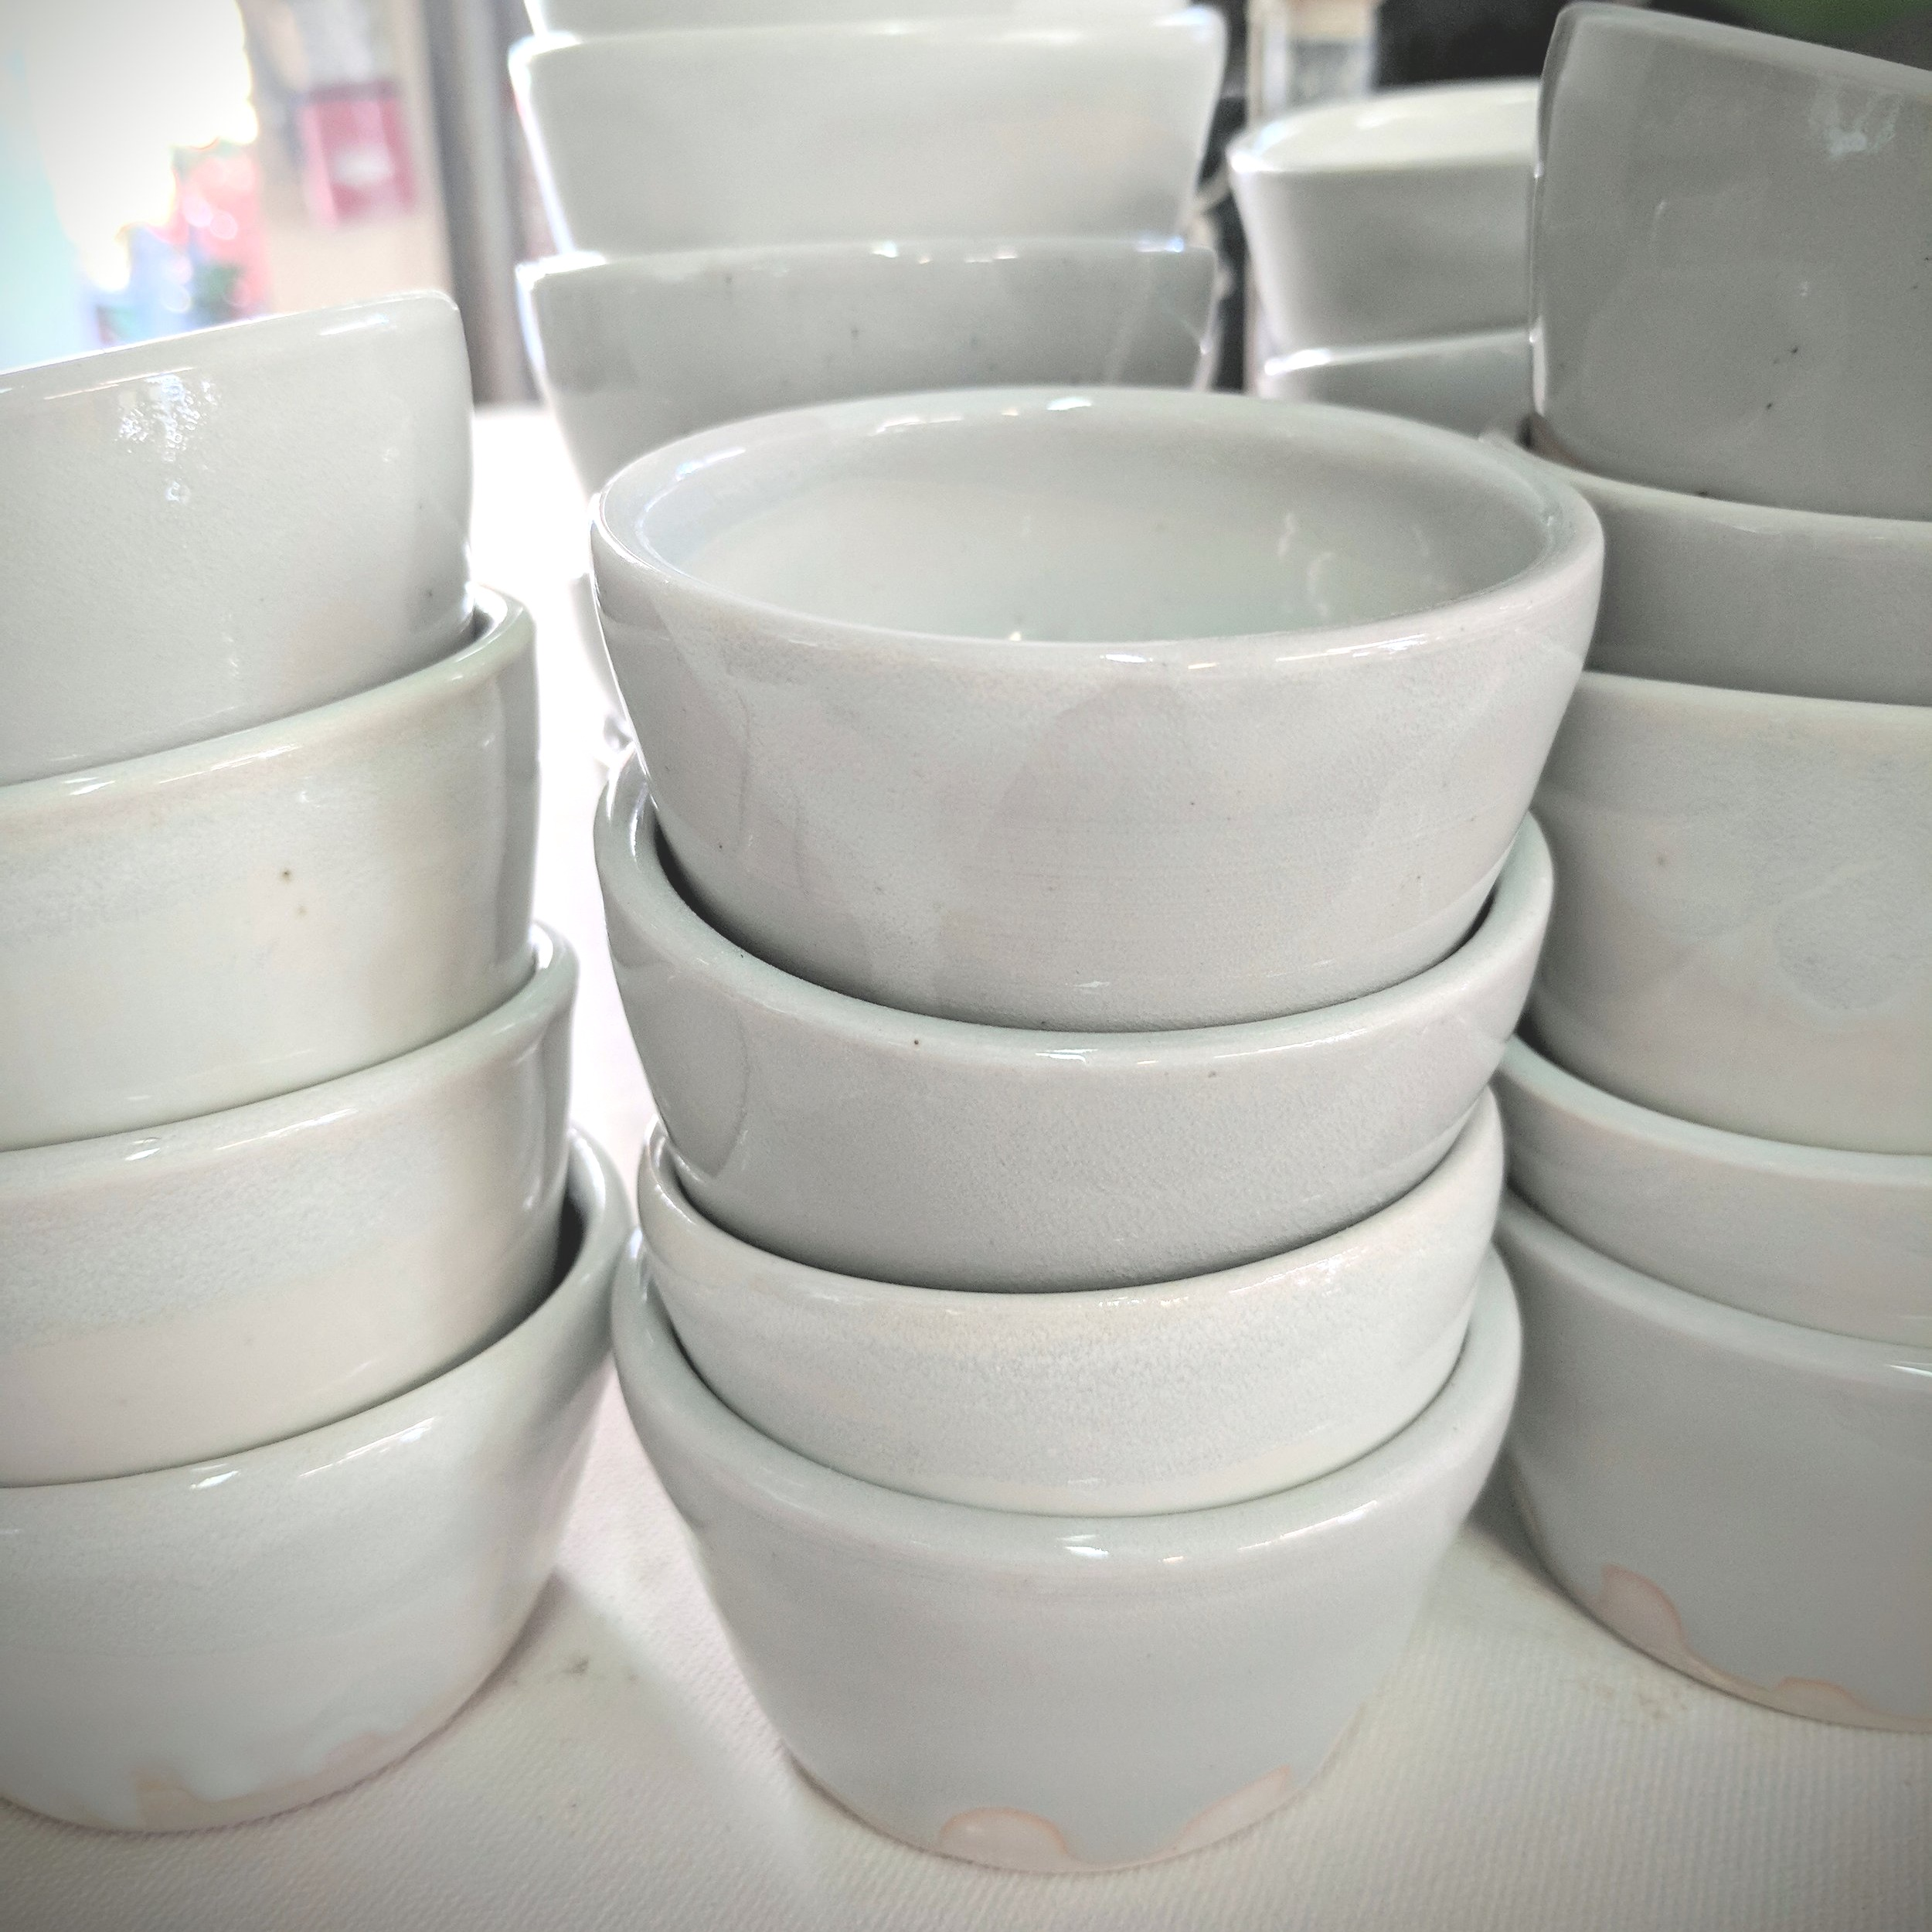 Photo: Reusable ceramic cups to decrease single use wasted items